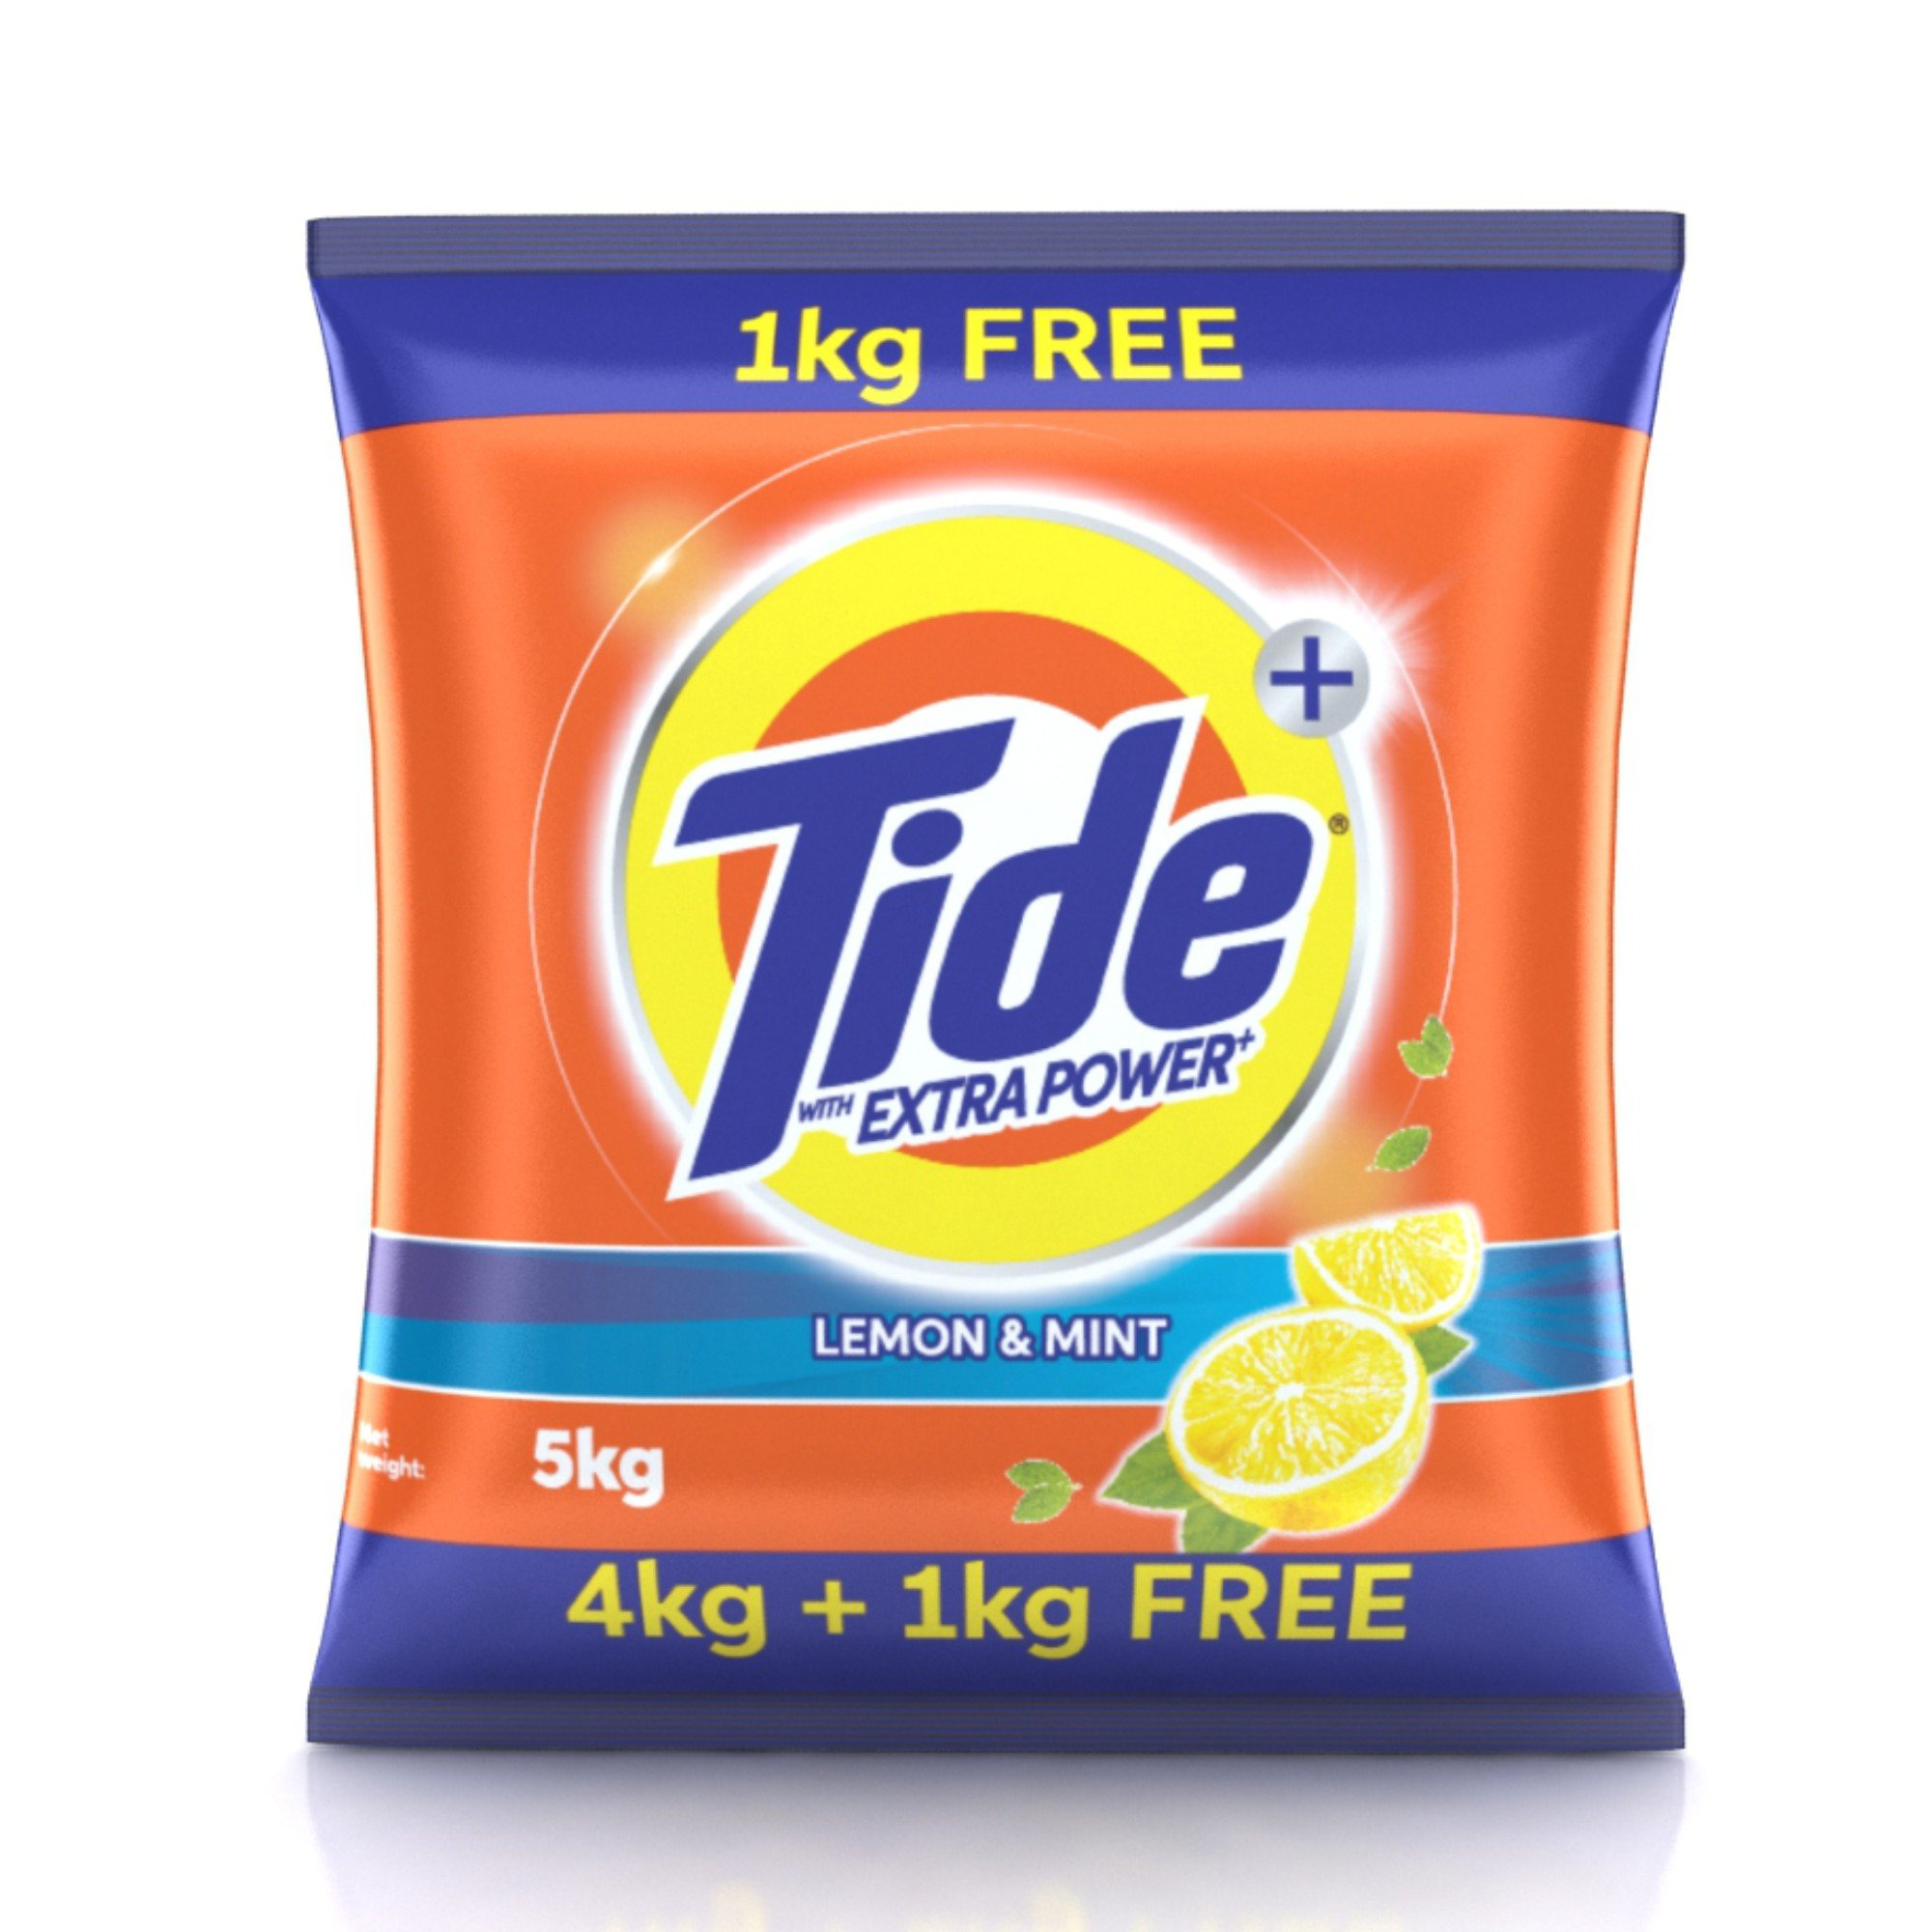 Tide Plus Extra Power Detergent Washing Powder - 4 kg (Lemon and Mint) with Free Detergent Powder - 1 kg product image